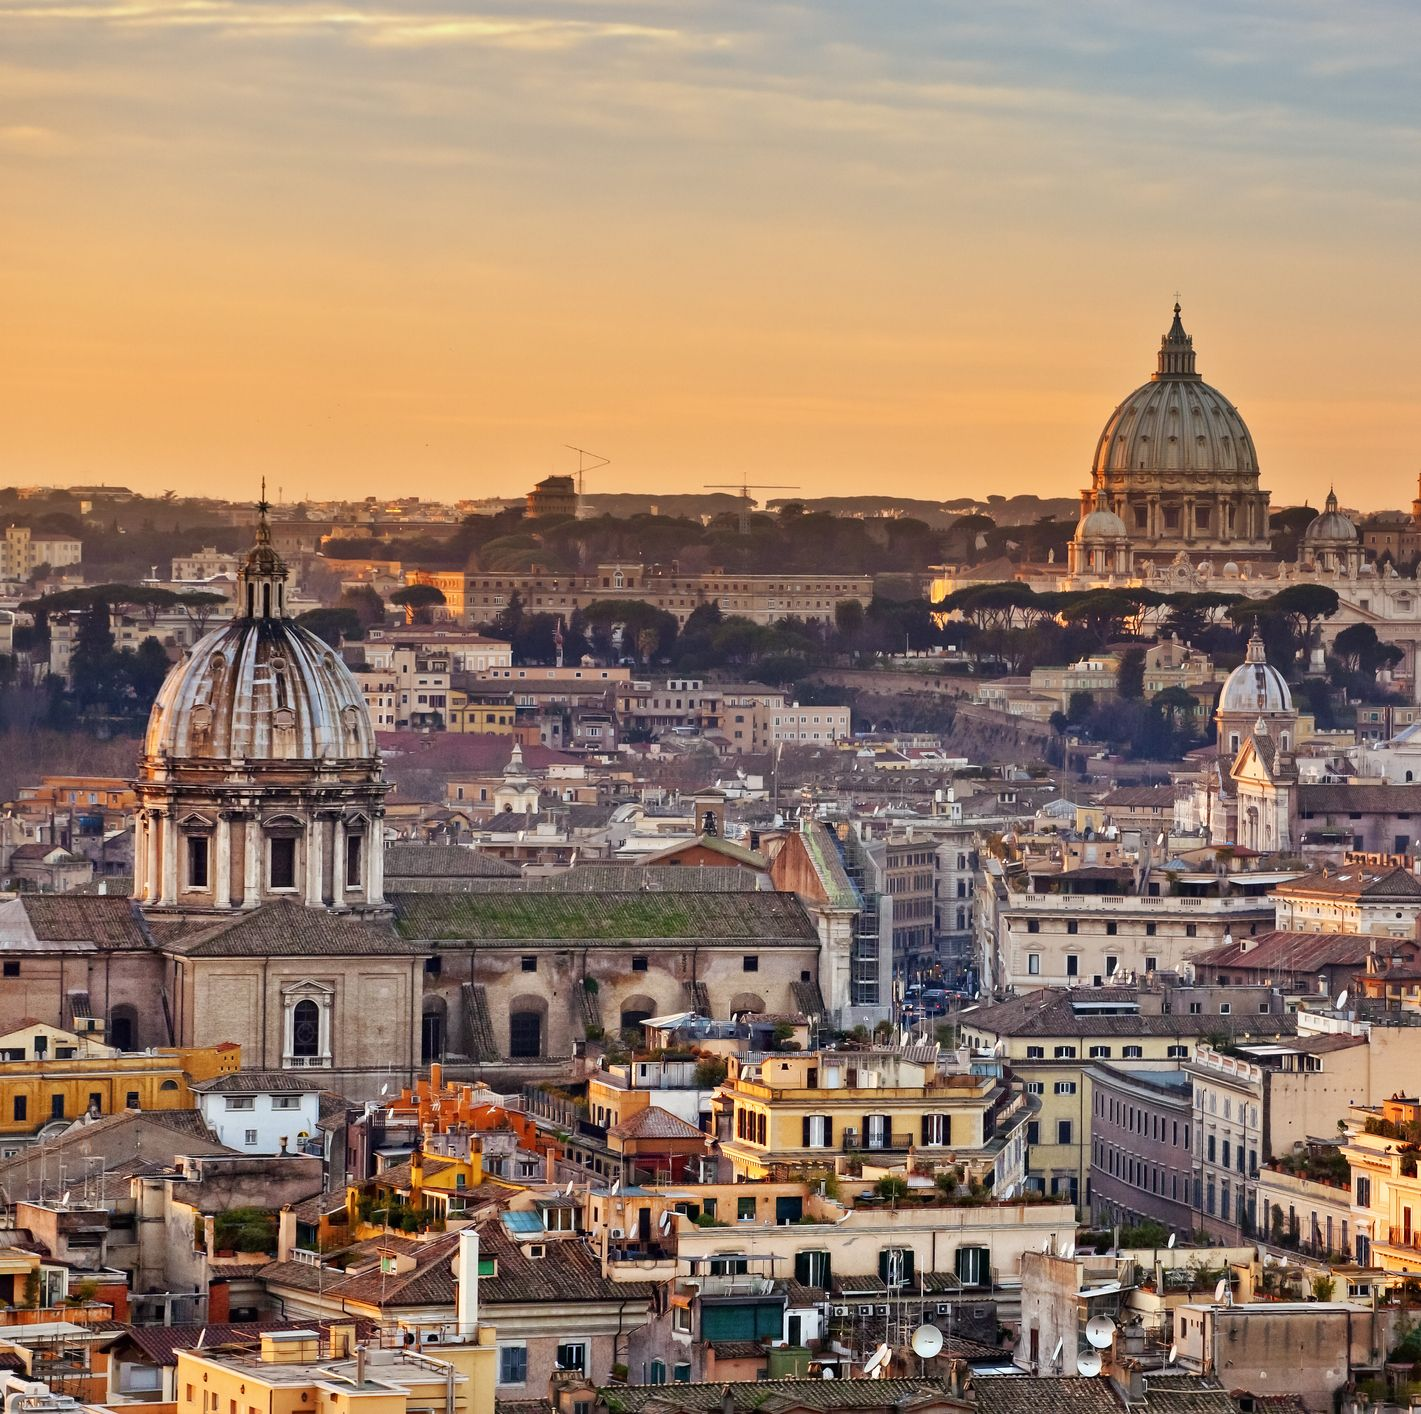 View from the top of Vittoriano, Rome, Lazio, Italy, Europe.